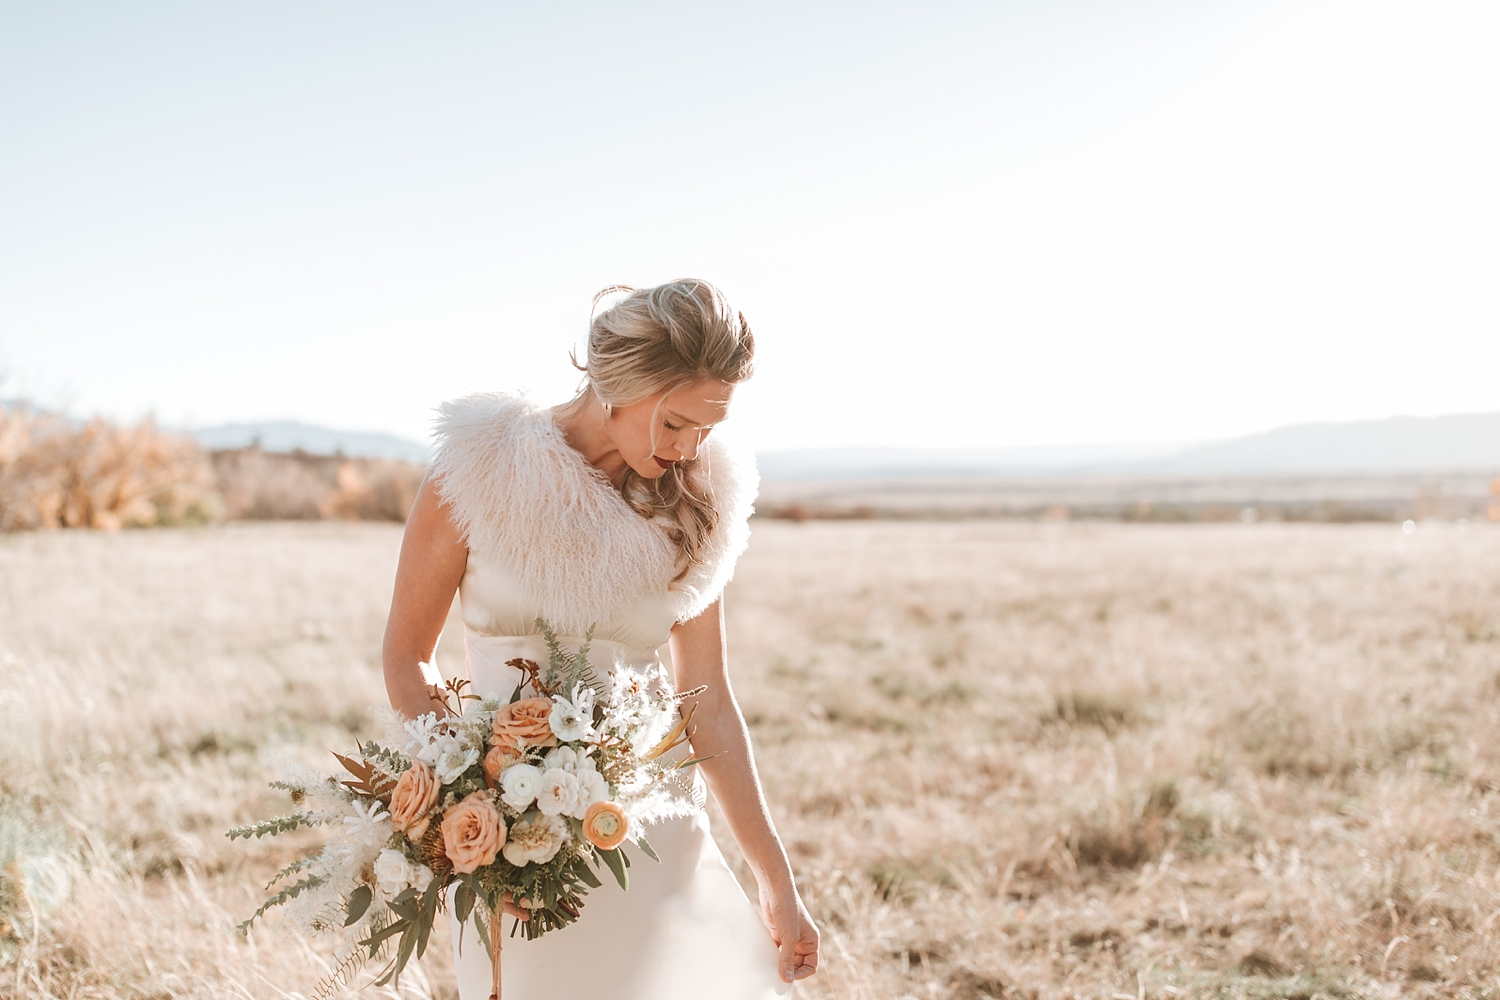 Alicia+lucia+photography+-+albuquerque+wedding+photographer+-+santa+fe+wedding+photography+-+new+mexico+wedding+photographer+-+new+mexico+ghost+ranch+wedding+-+styled+wedding+shoot_0034.jpg